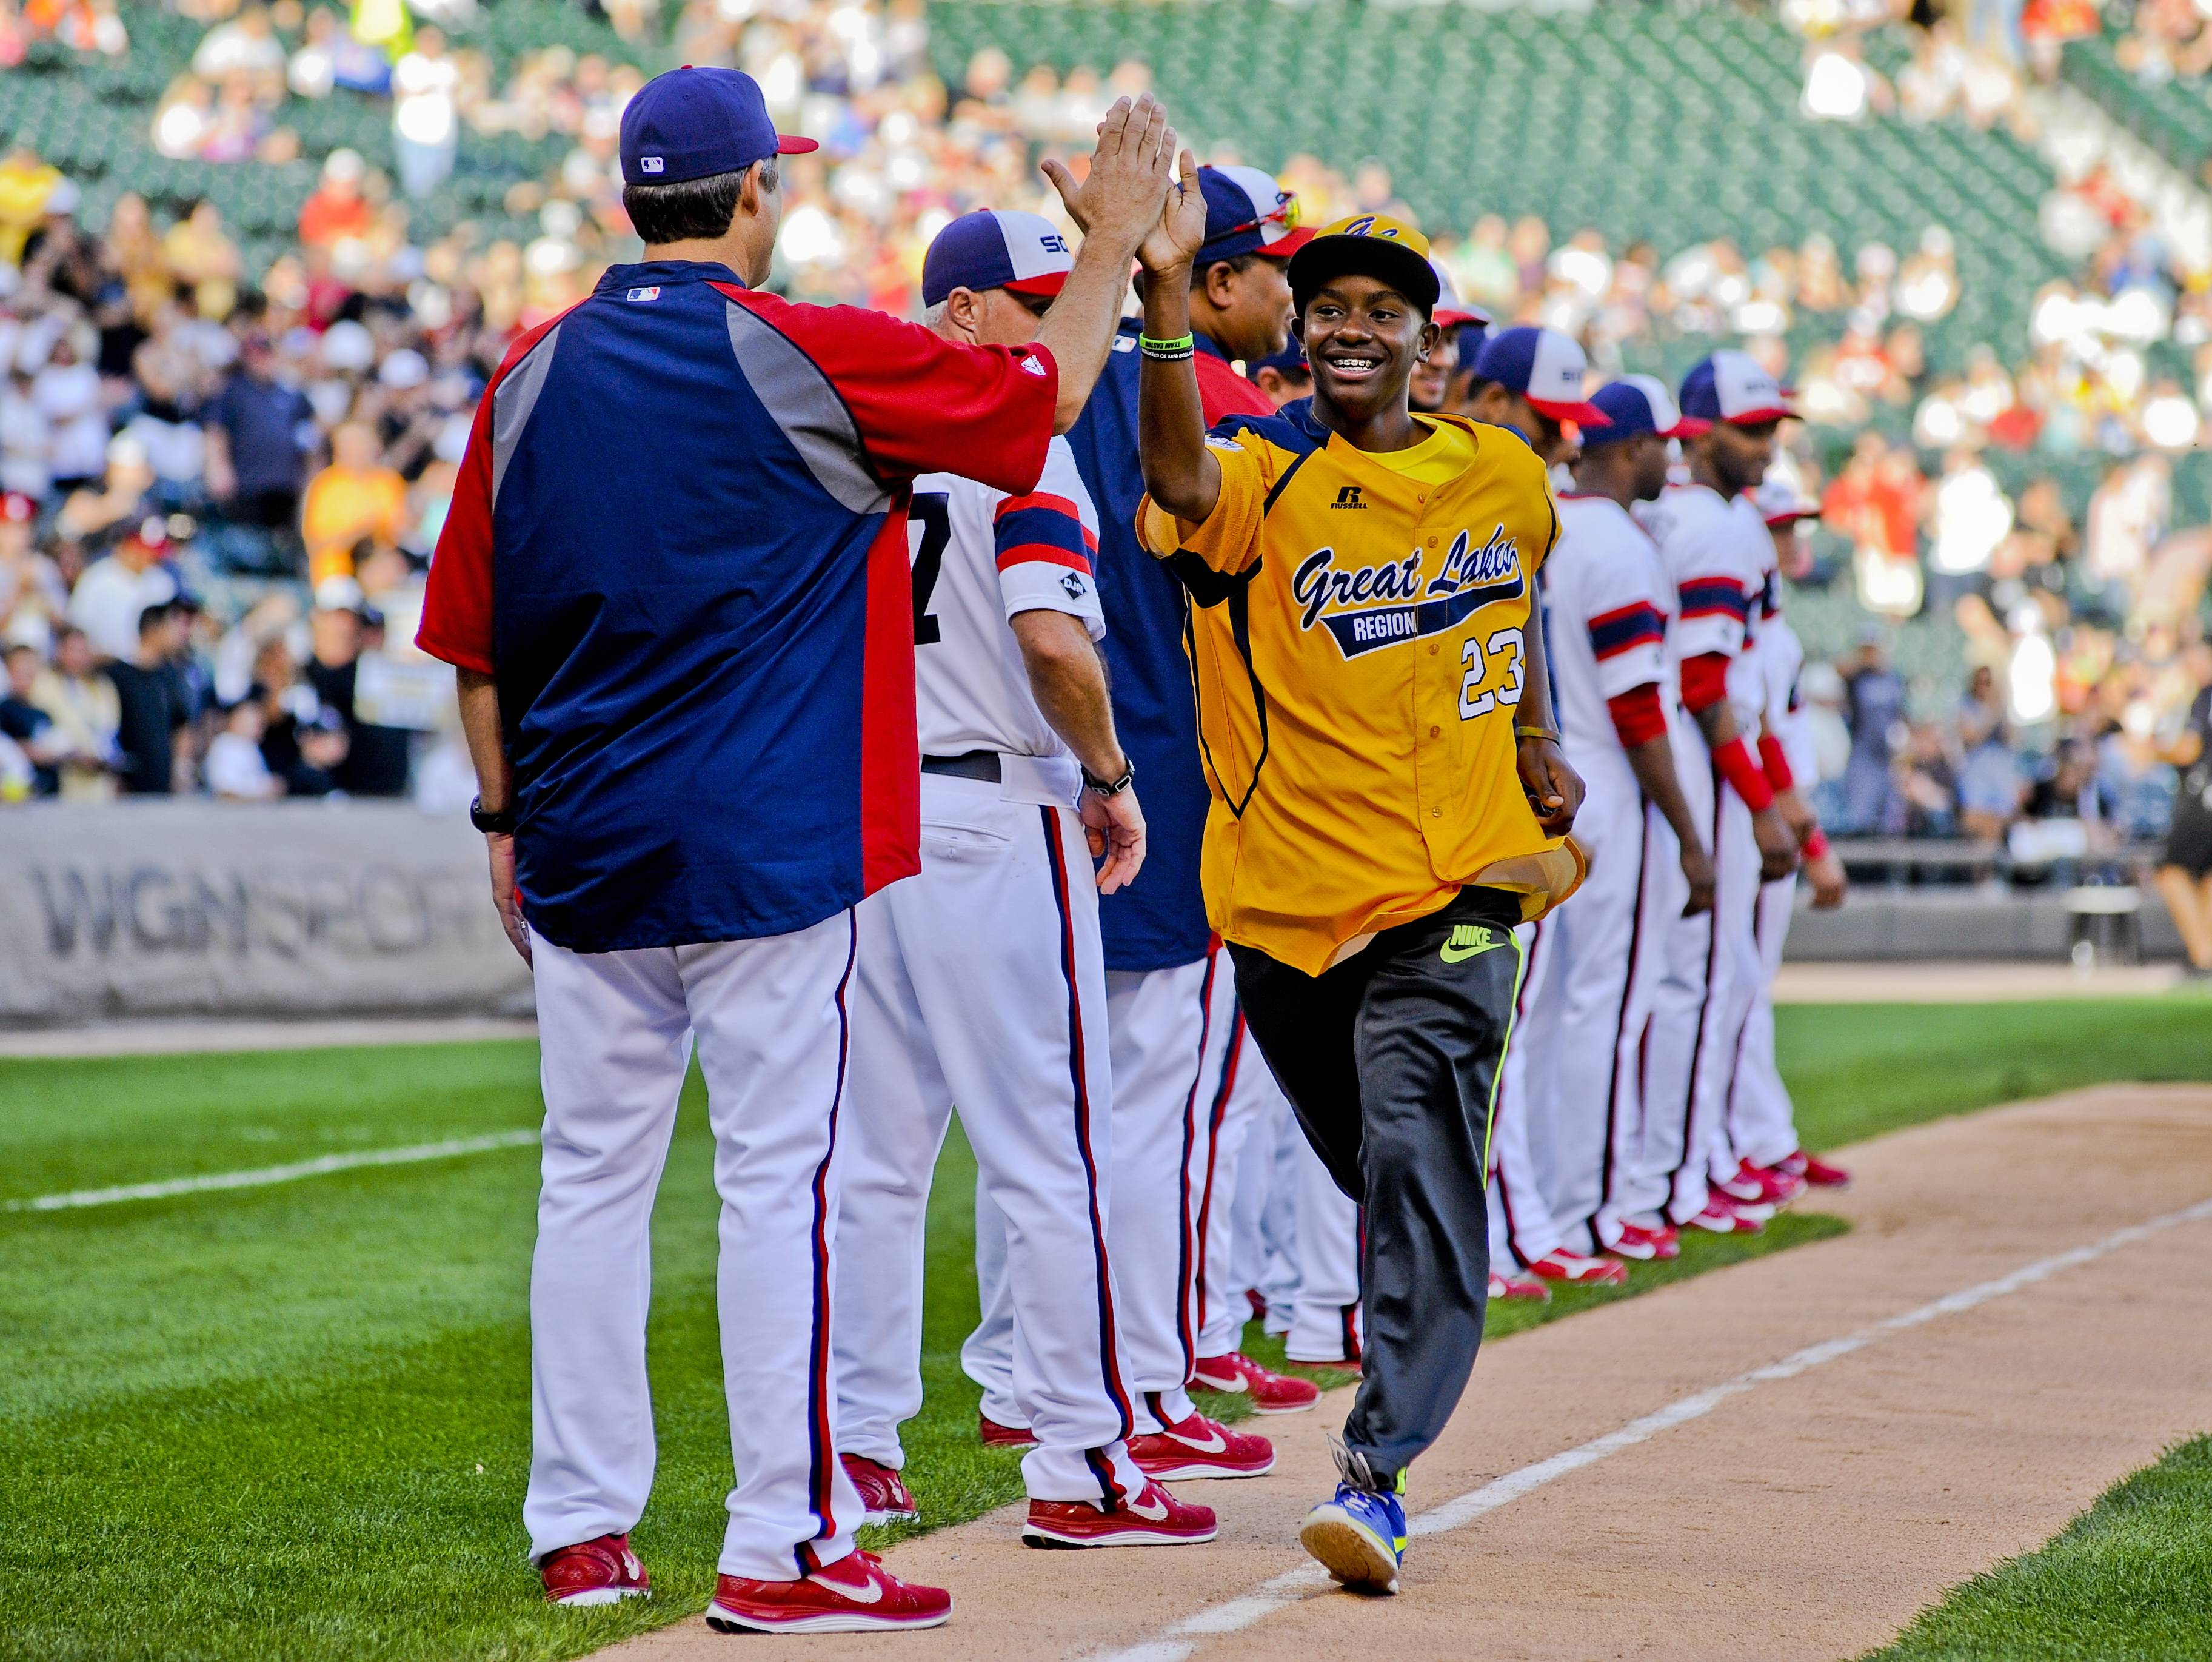 A member of the Jackie Robinson West Little League team high-fives a member of the White Sox as they were honored before the second game of the Sox's doubleheader against the Detroit Tigers Saturday at U.S. Cellular Field.